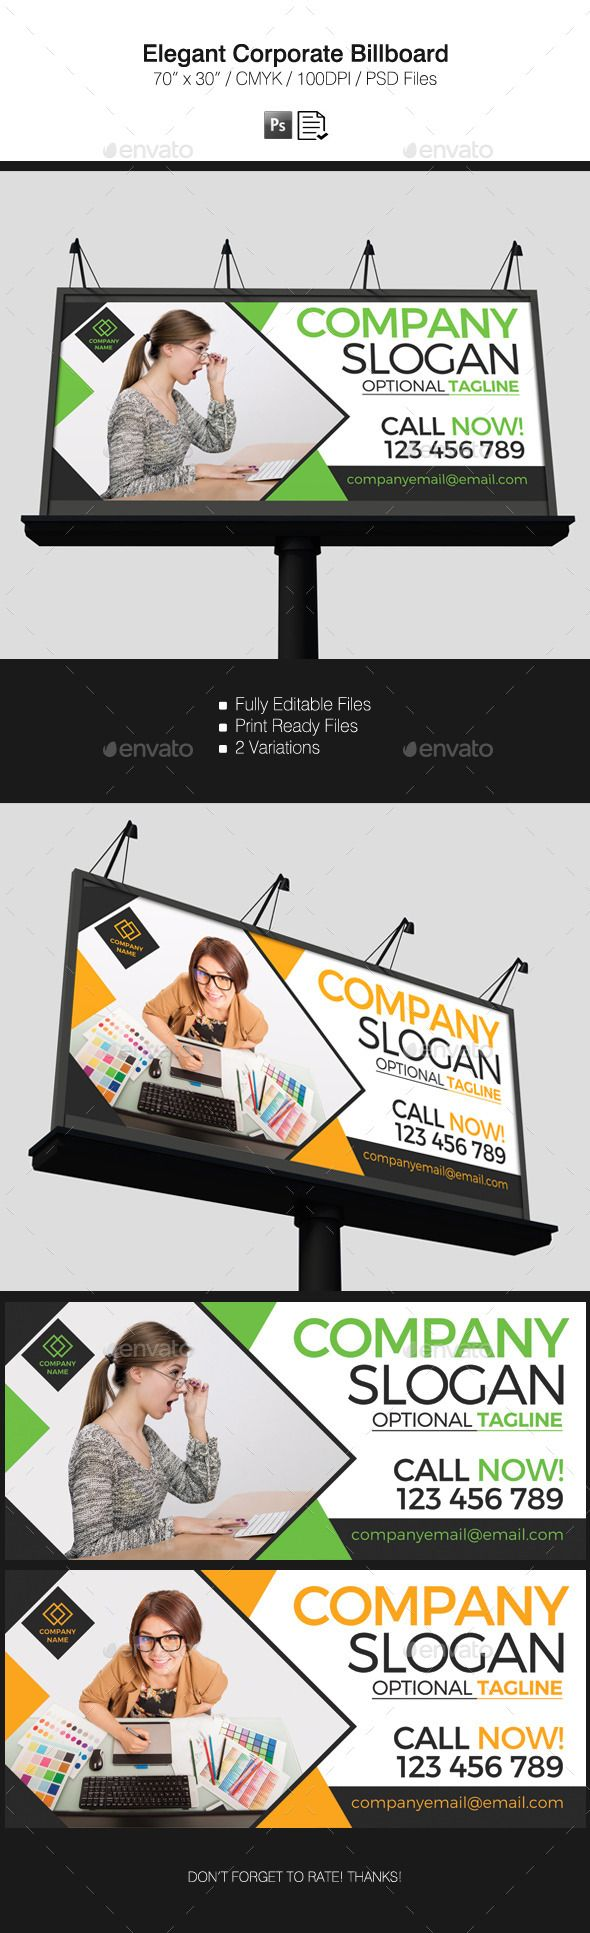 Elegant Corporate Billboard #design Download: http://graphicriver.net/item/elegant-corporate-billboard/12225766